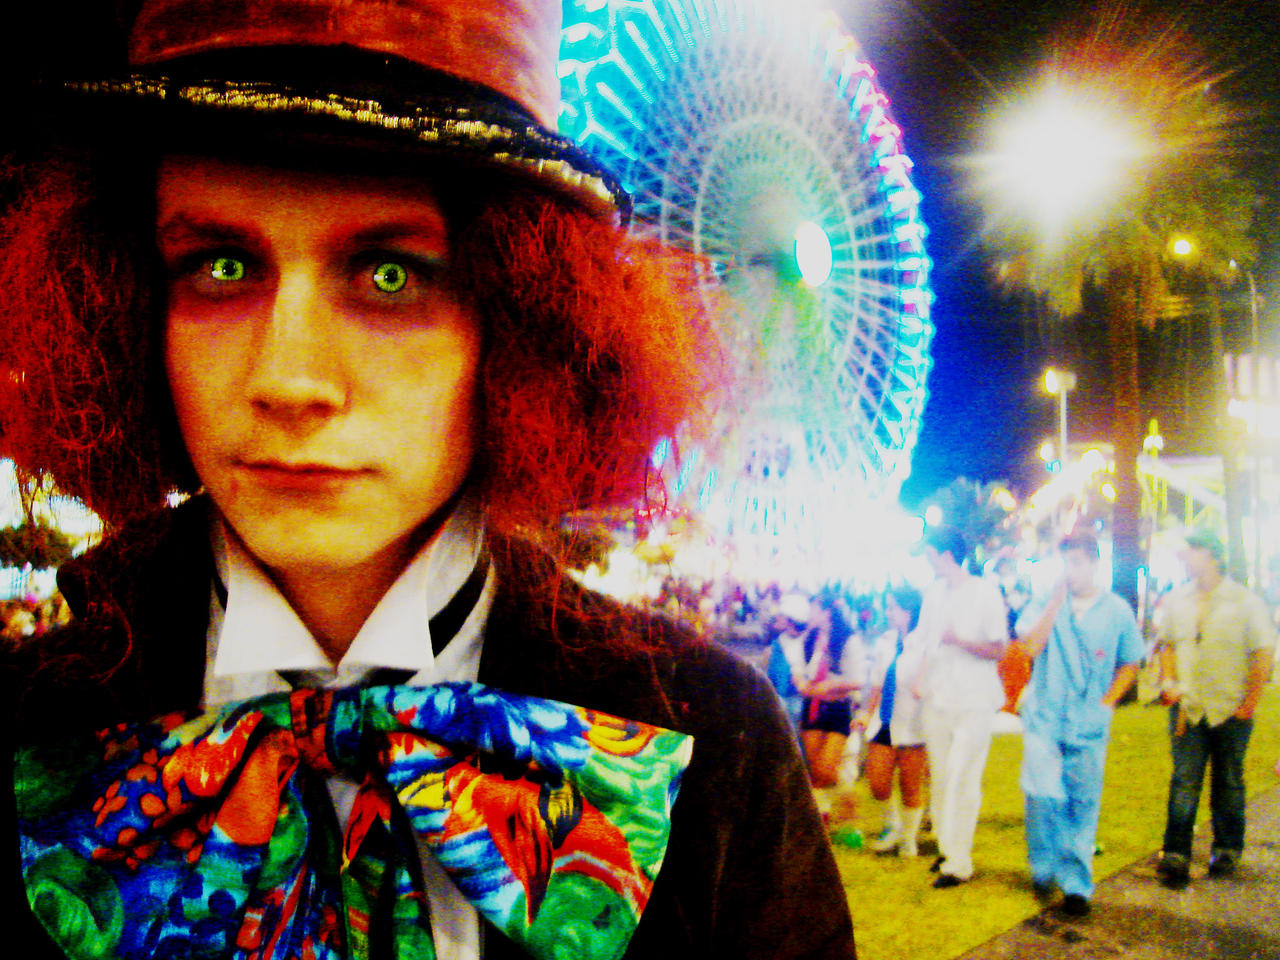 The Mad Hatter in Wonderland by Danny-Vain